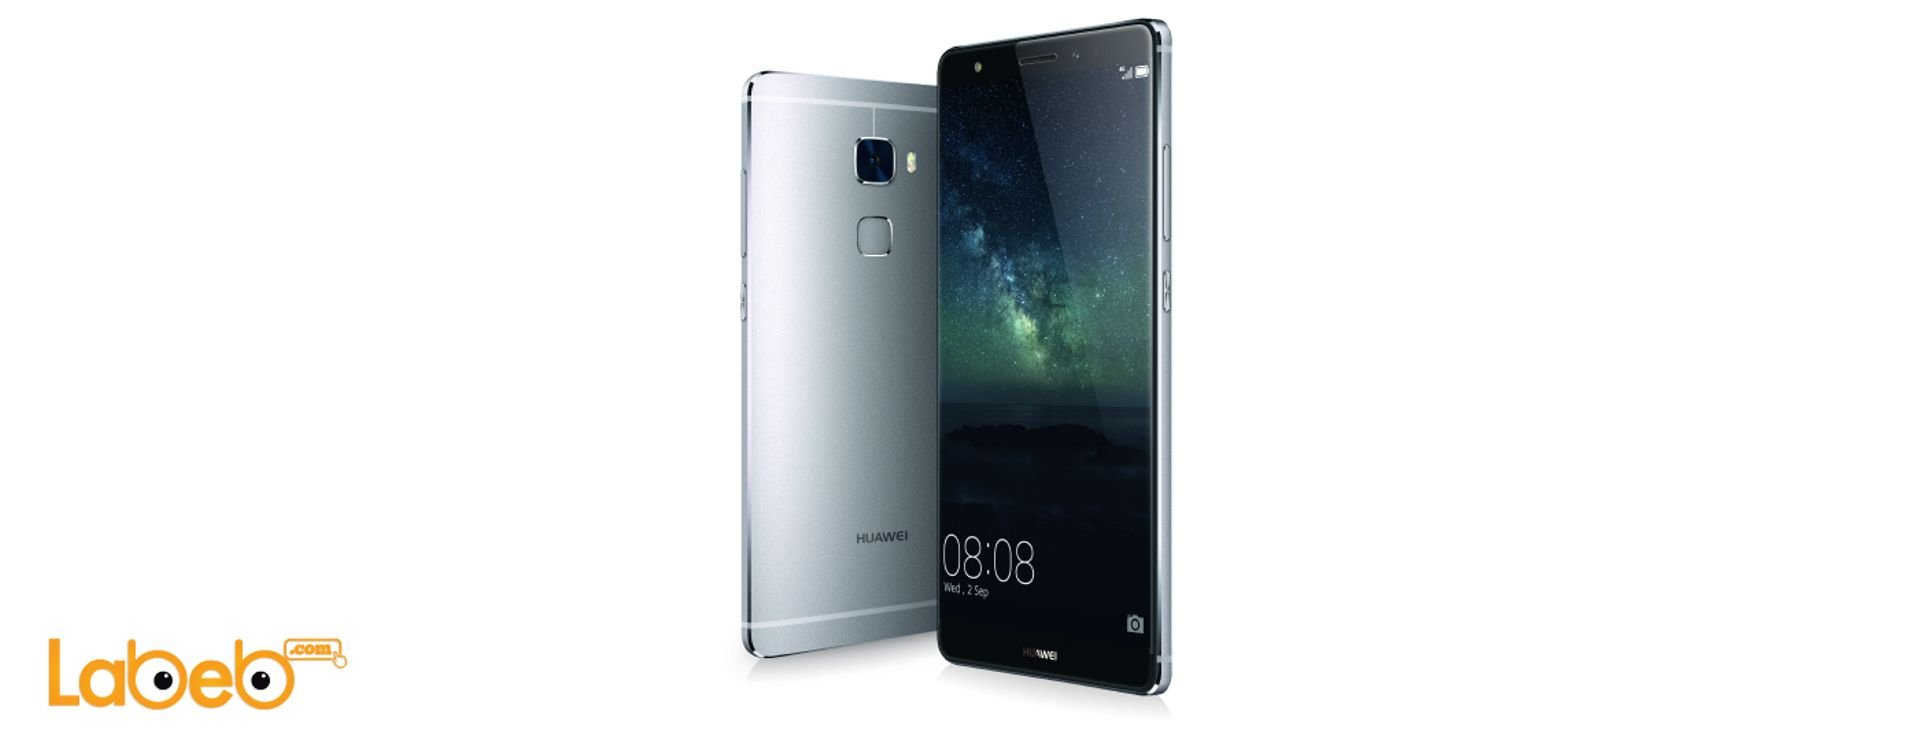 Huawei Mate S Phones